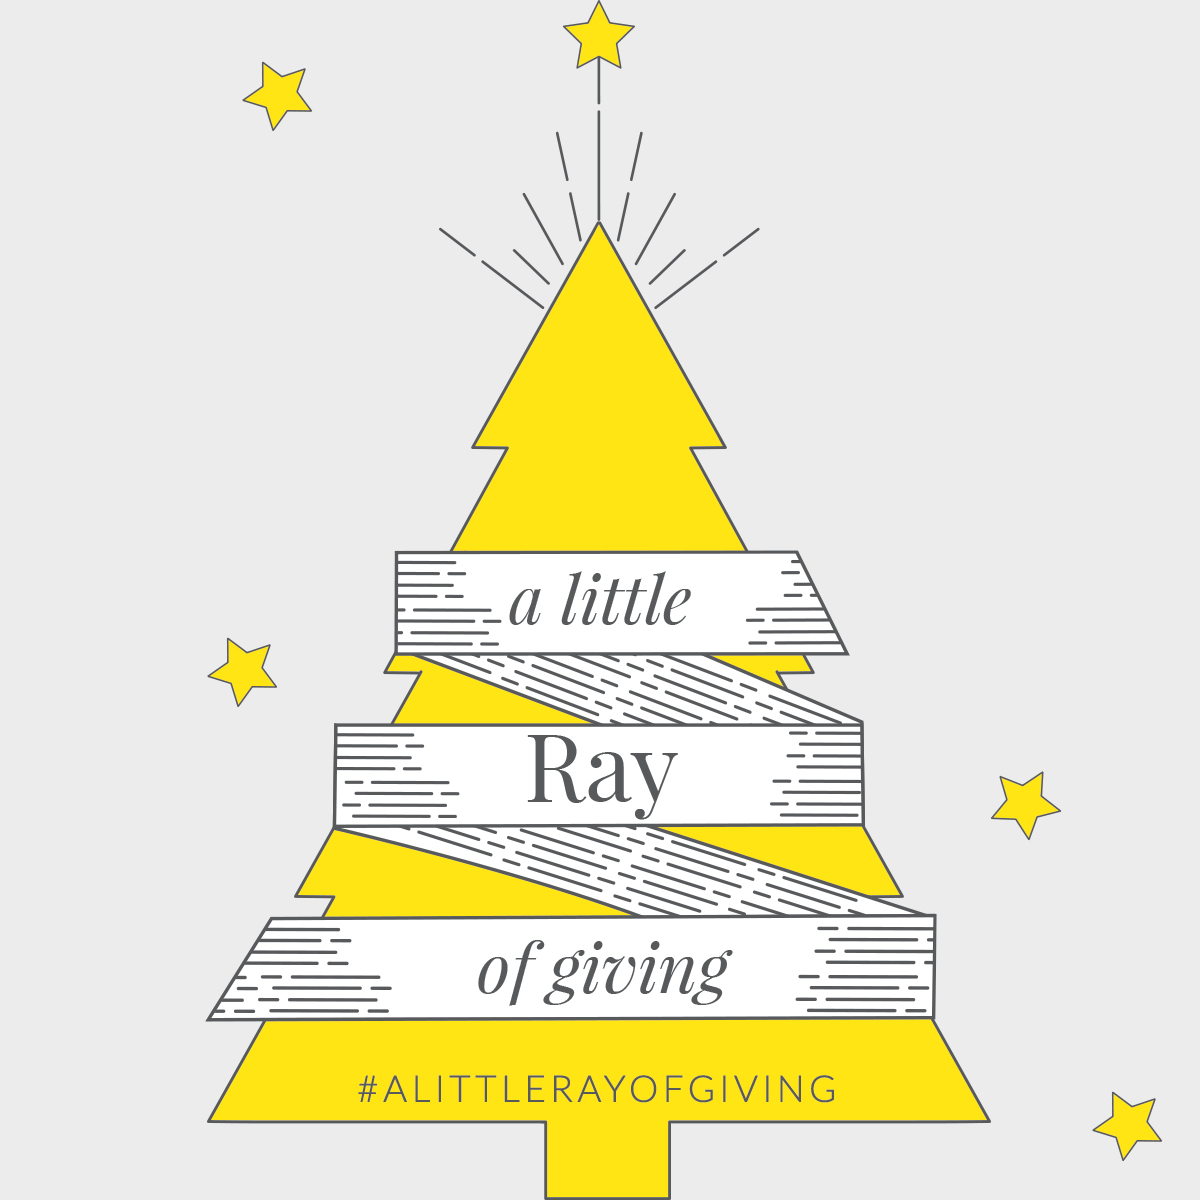 a little Ray of giving 2017